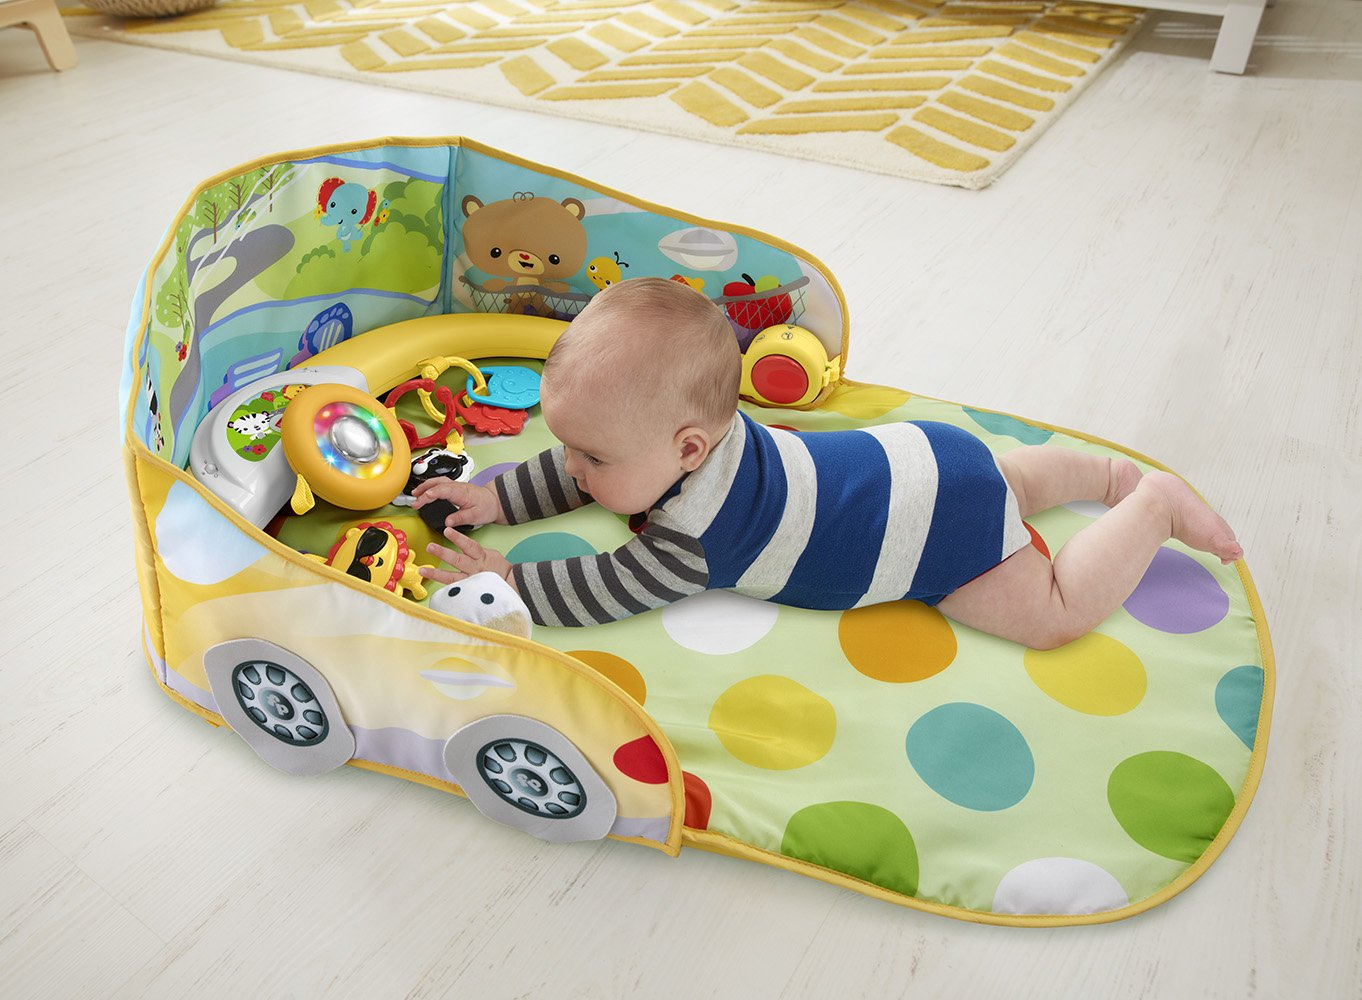 fisherprice in convertible car play gym amazonca baby -